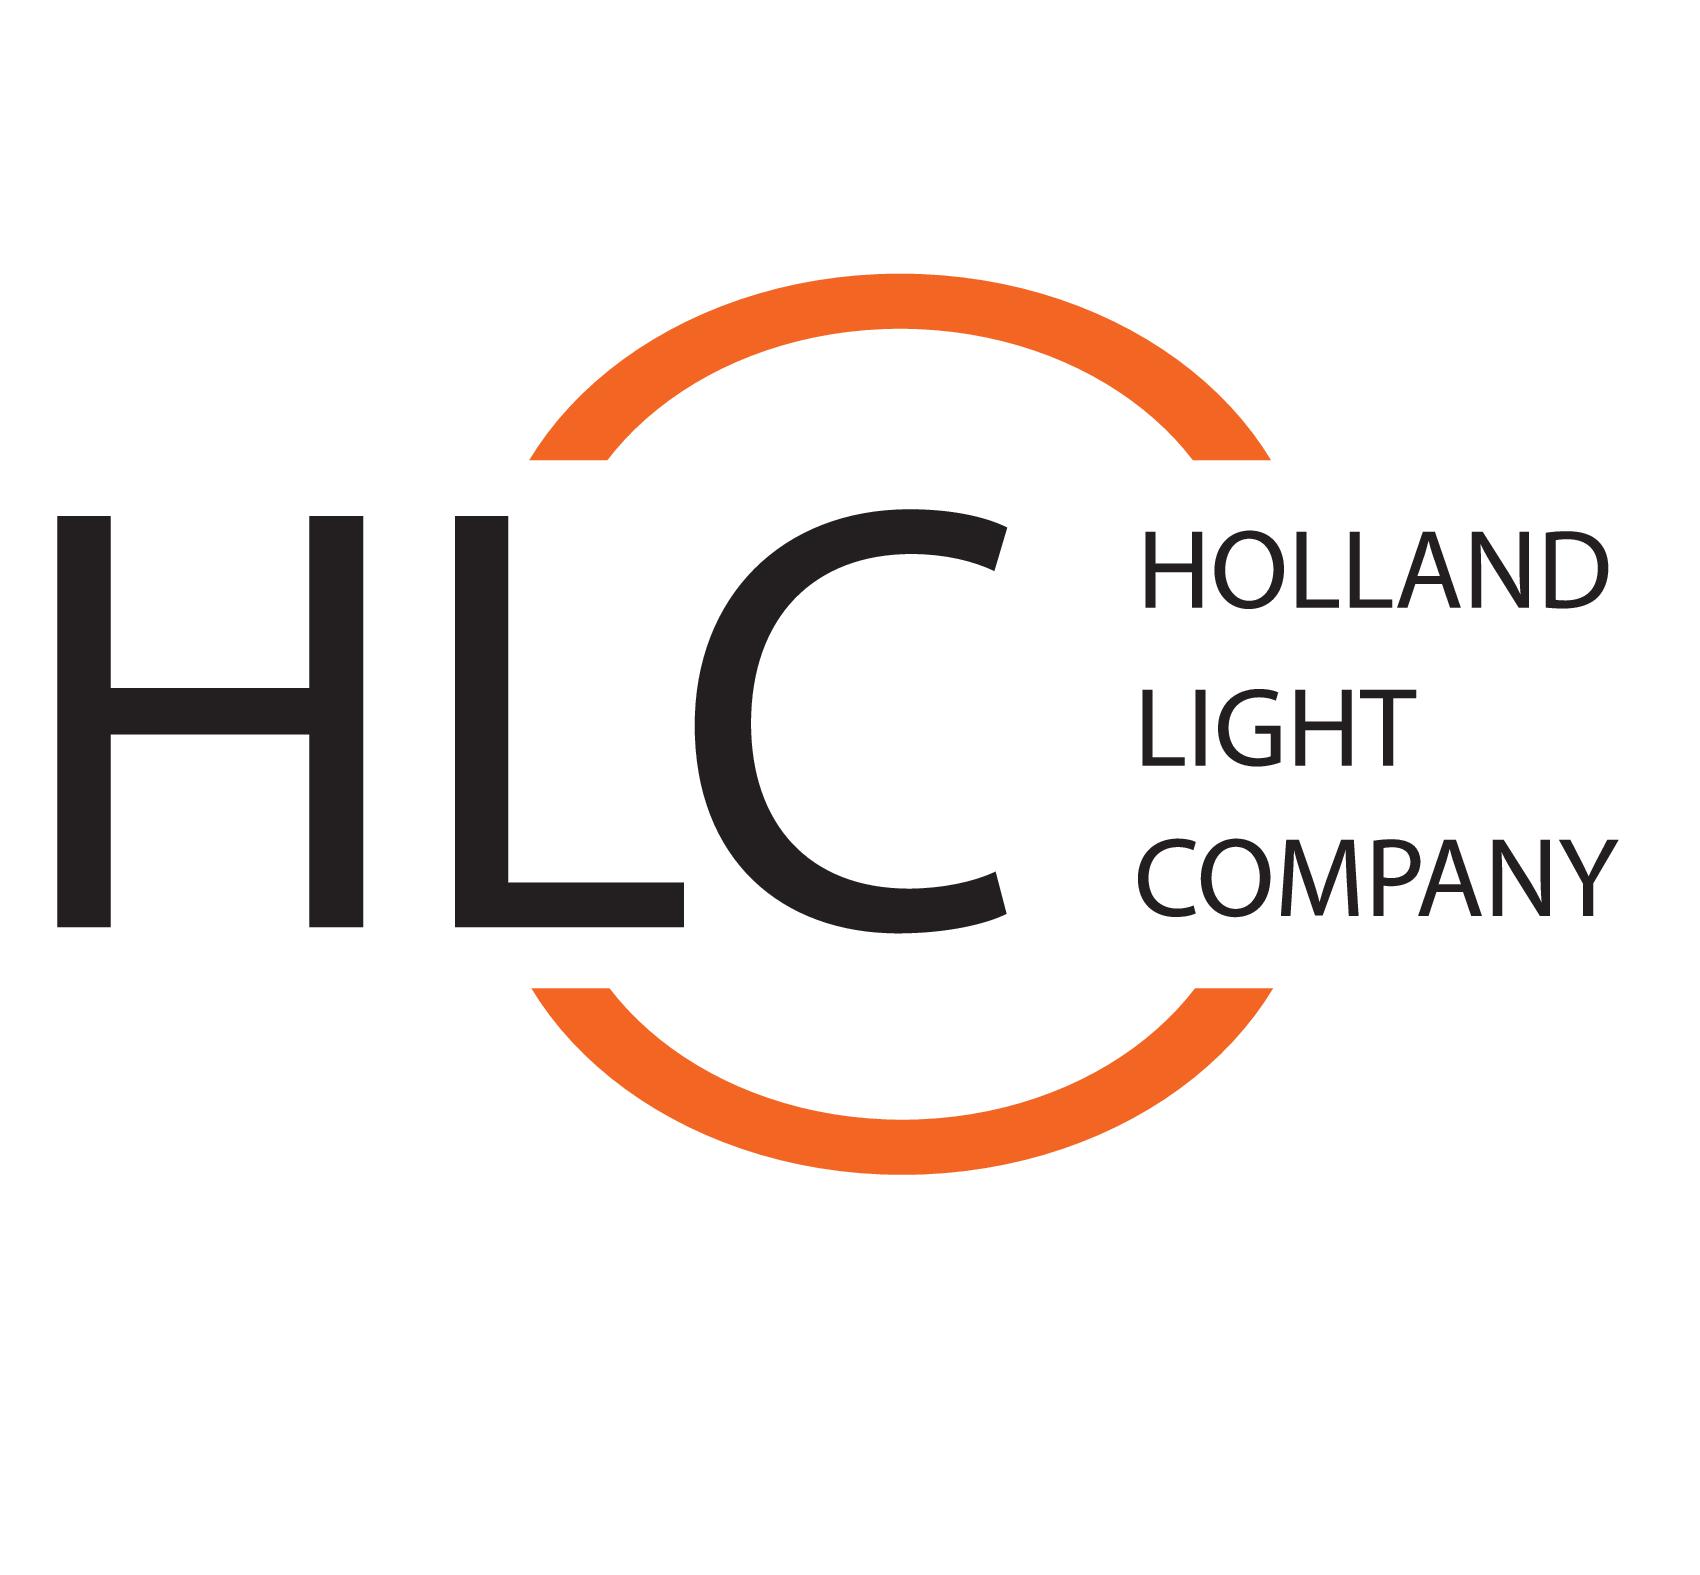 Holland Light Company